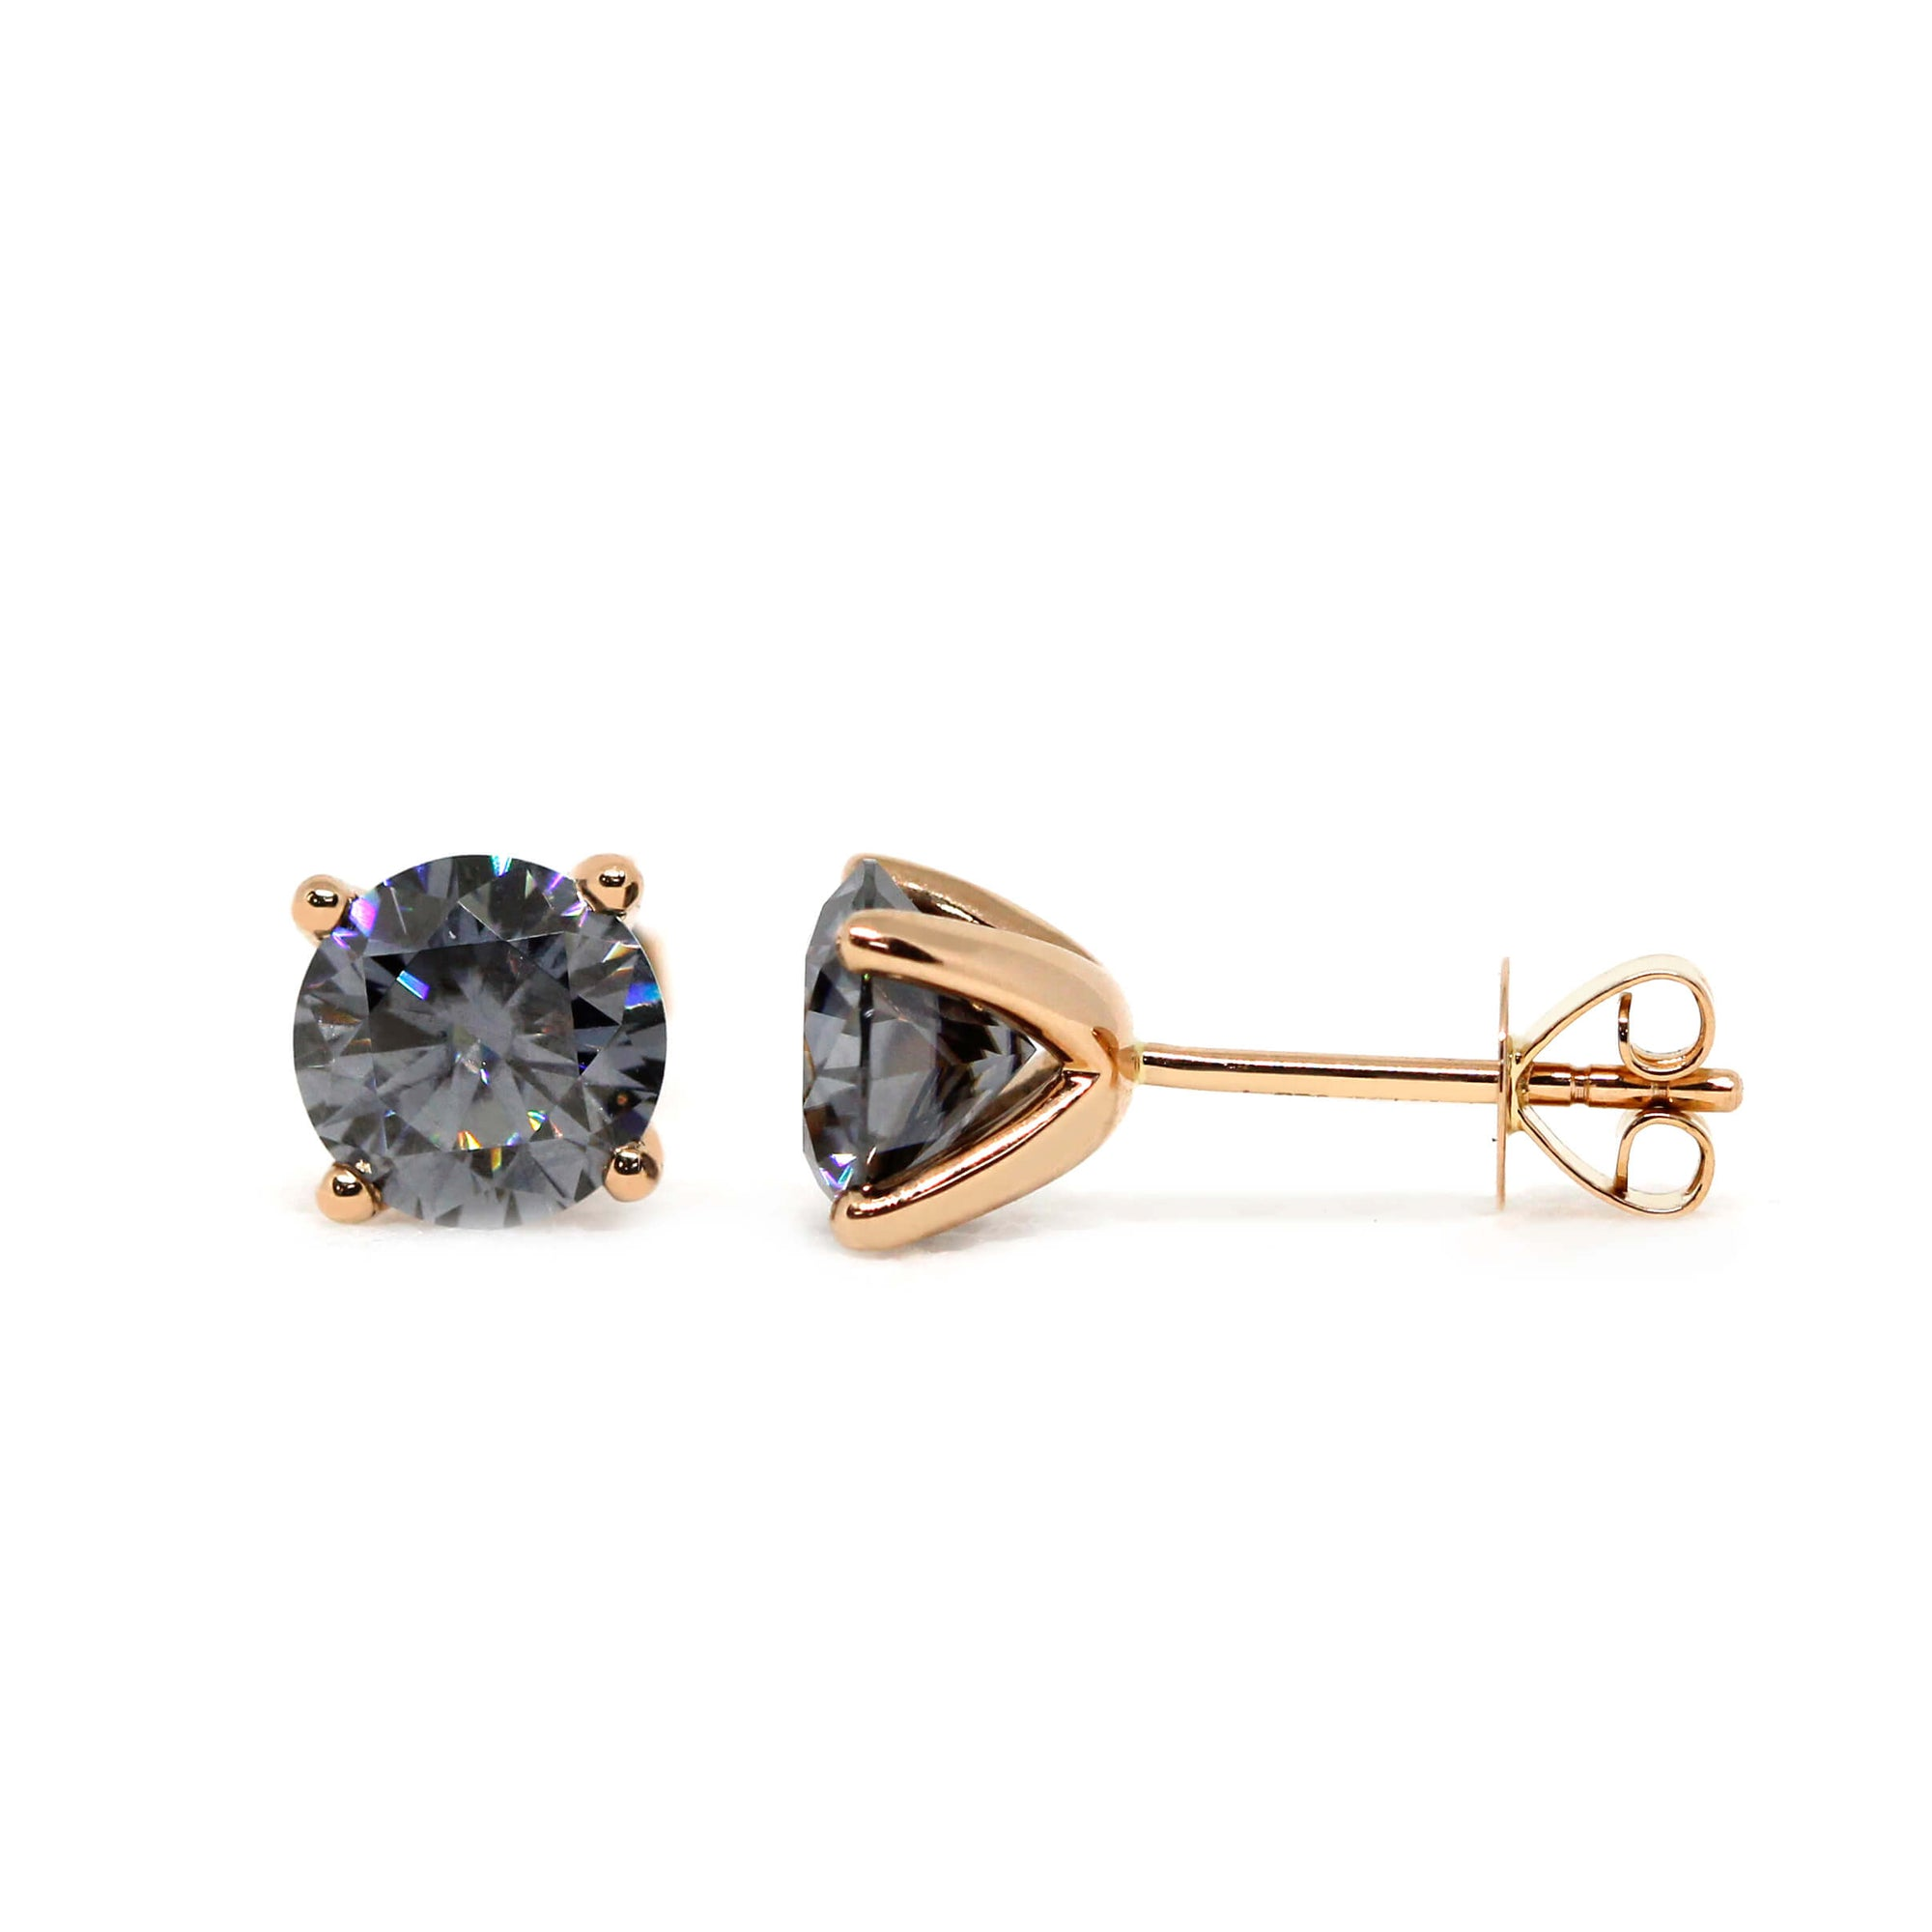 Ready Made | Grey Moissanite Solitaire 18K Rose Gold Stud Earrings - LeCaine Gems